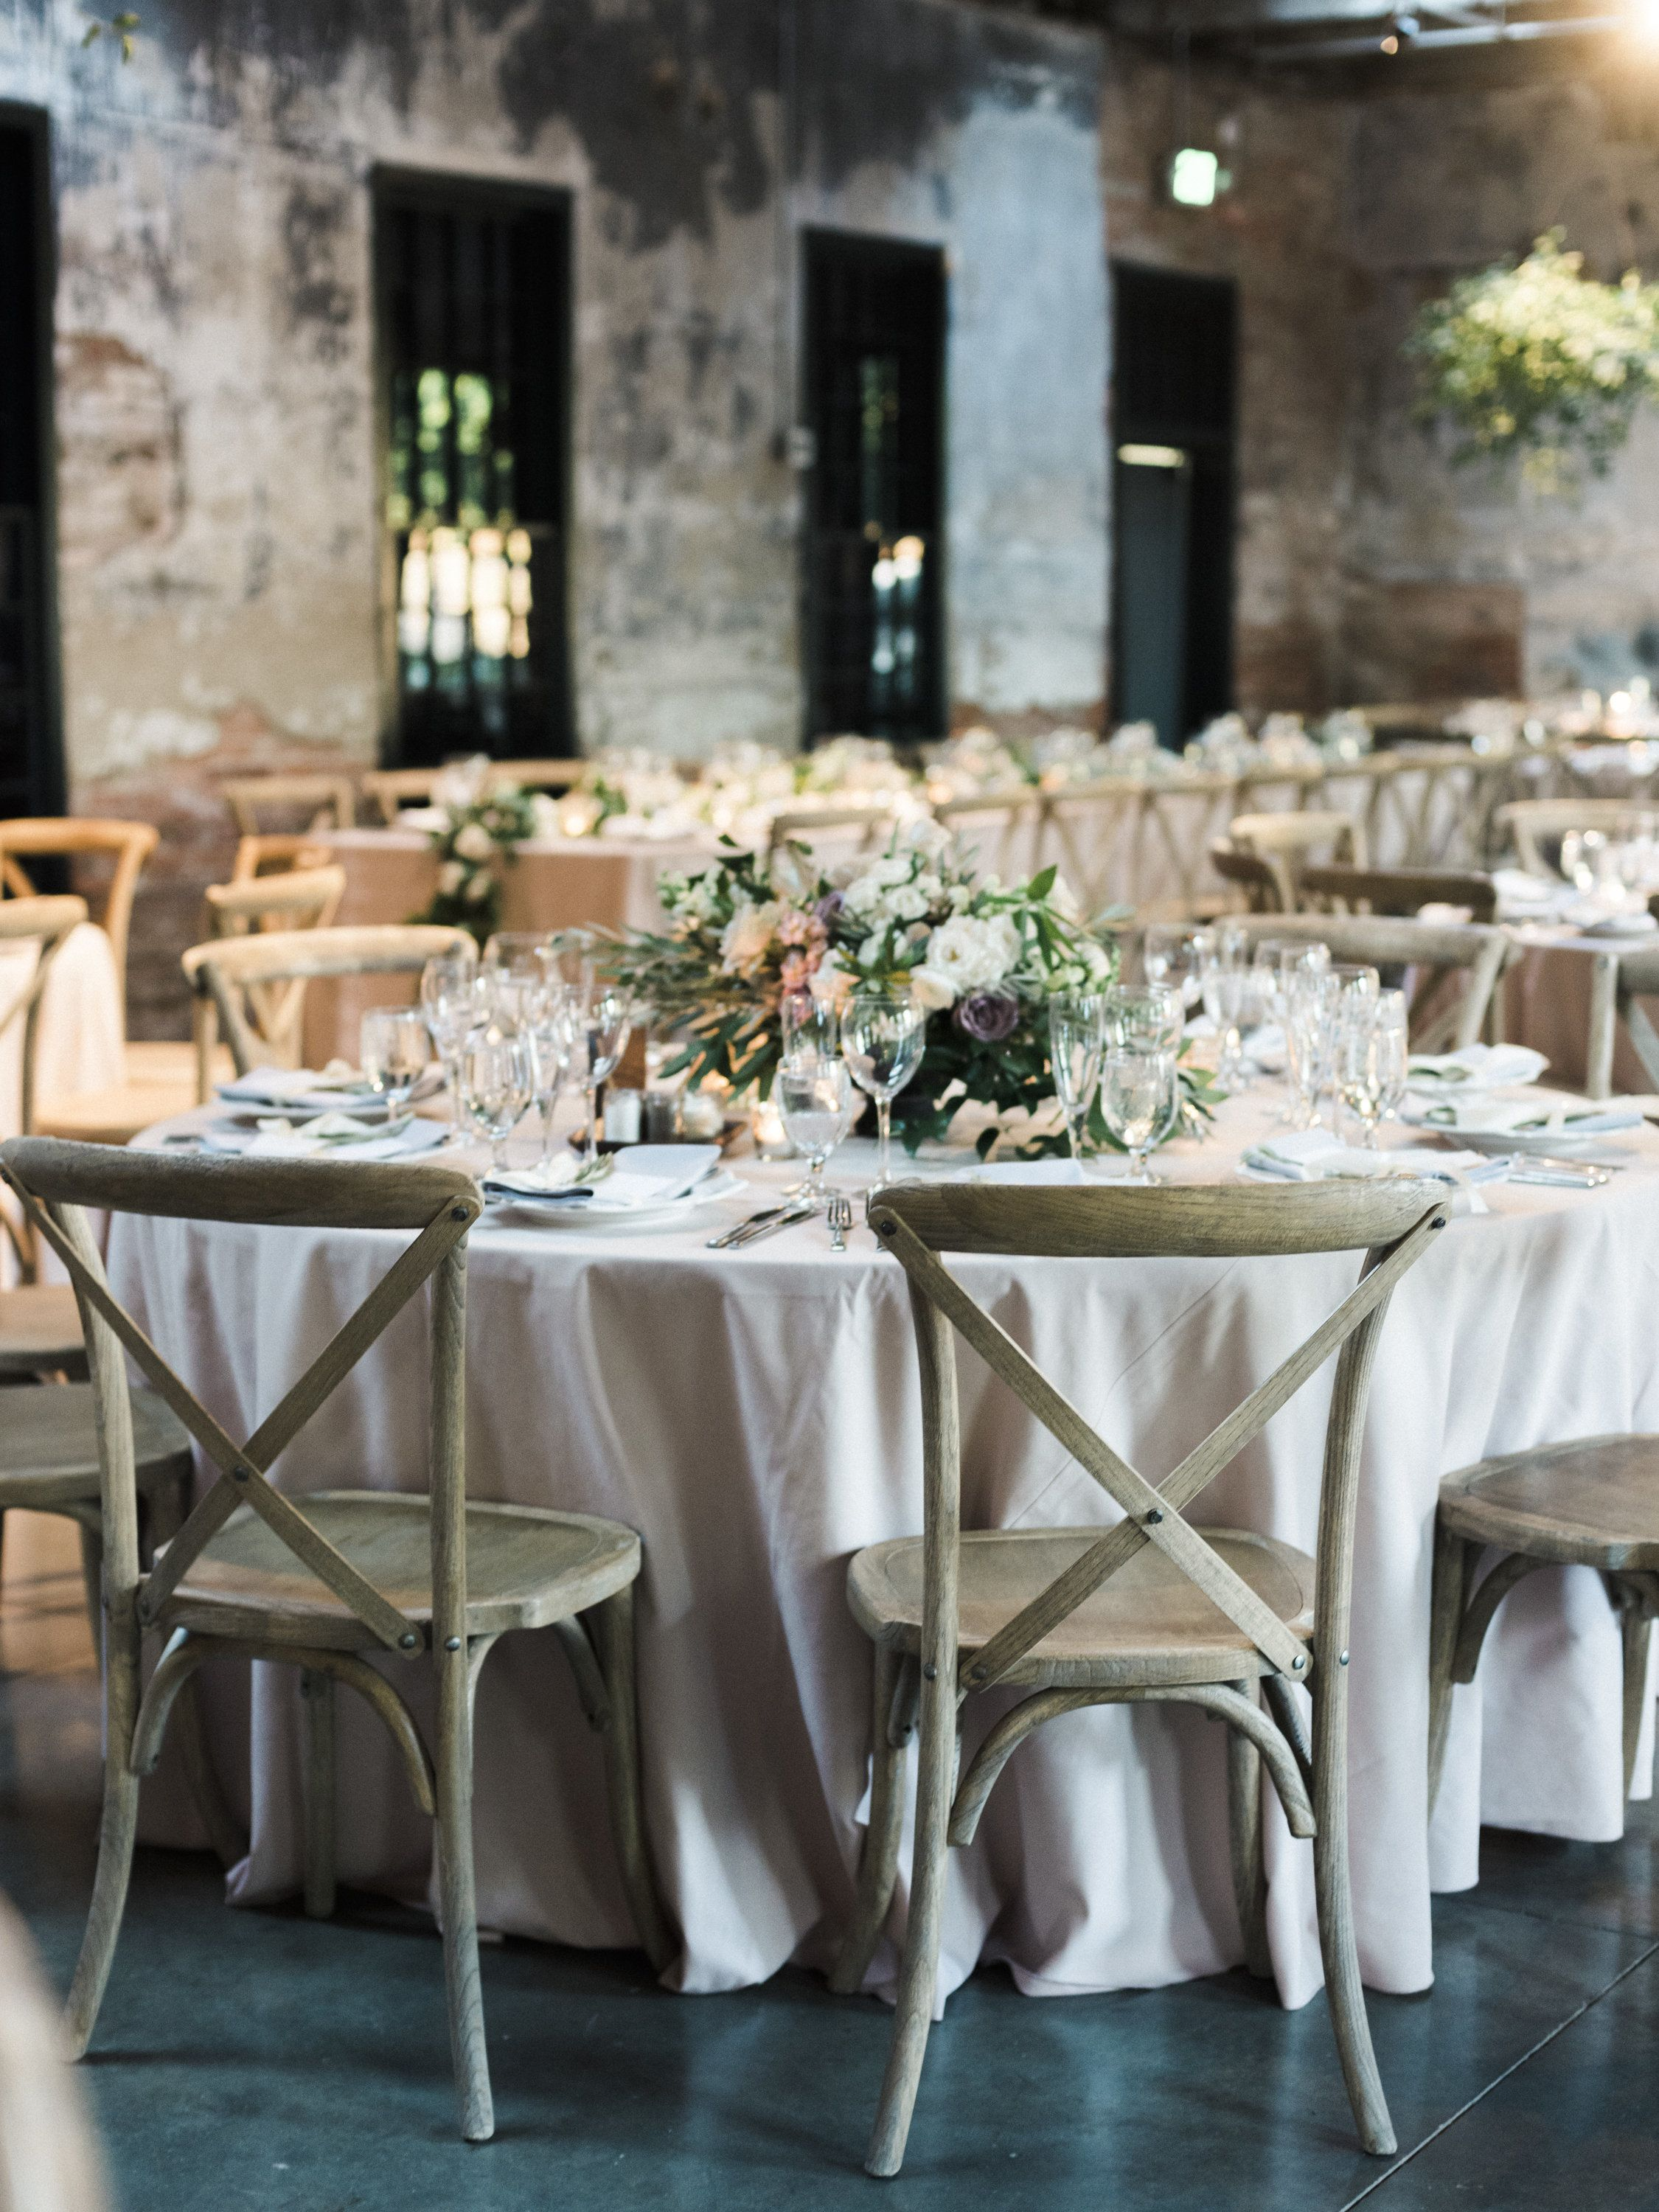 With Greenery, Garlands And Lots Of Soft Blooms, This Industrial Wedding  Venue Was Turned Into The Most Elegant And Gorgeous Reception Space.